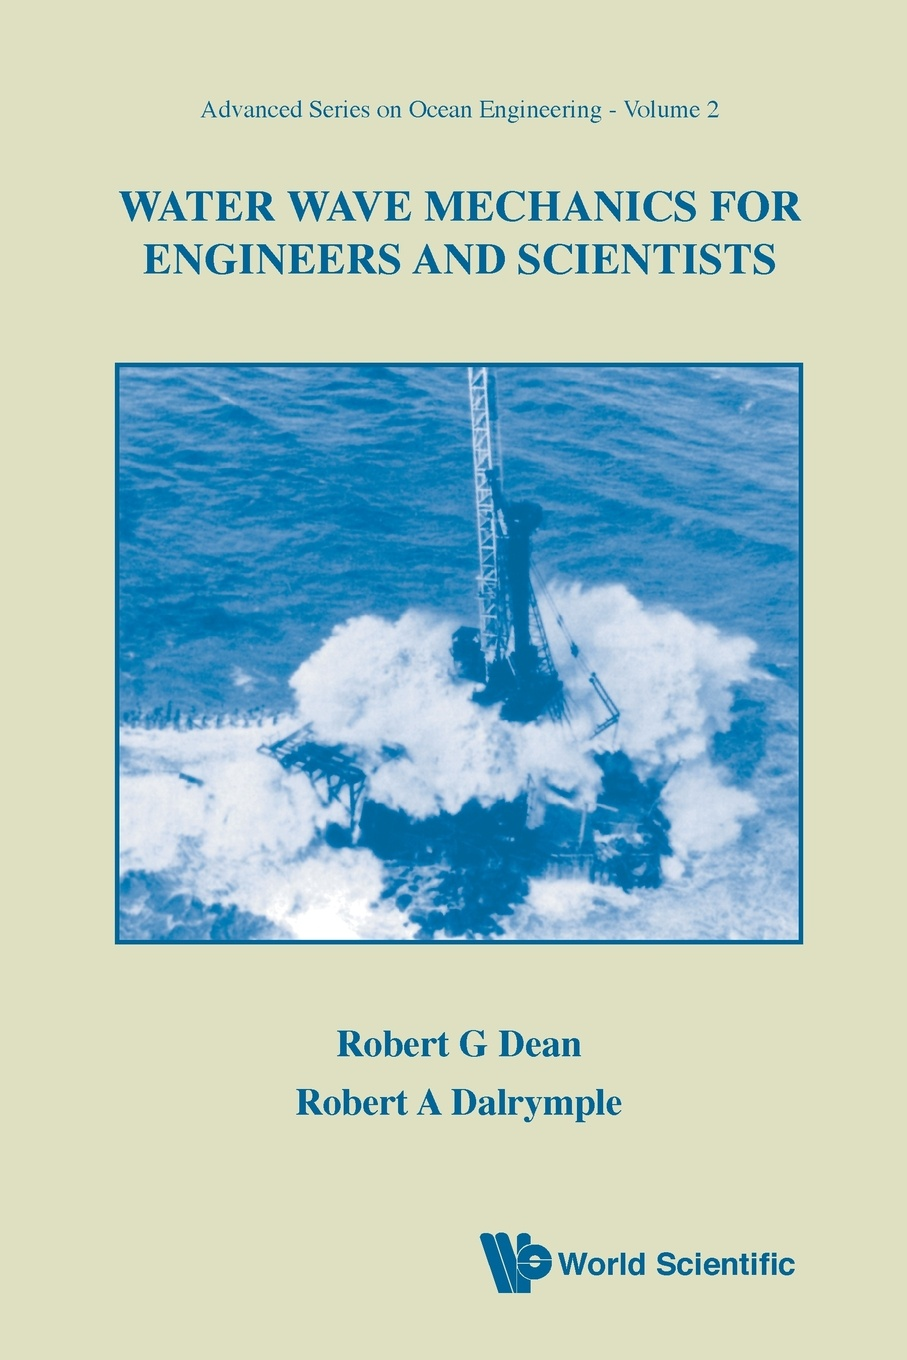 Robert G Dean, Robert A Dalrymple WATER WAVE MECHANICS FOR ENGINEERS AND SCIENTISTS david yevick fundamental math and physics for scientists and engineers